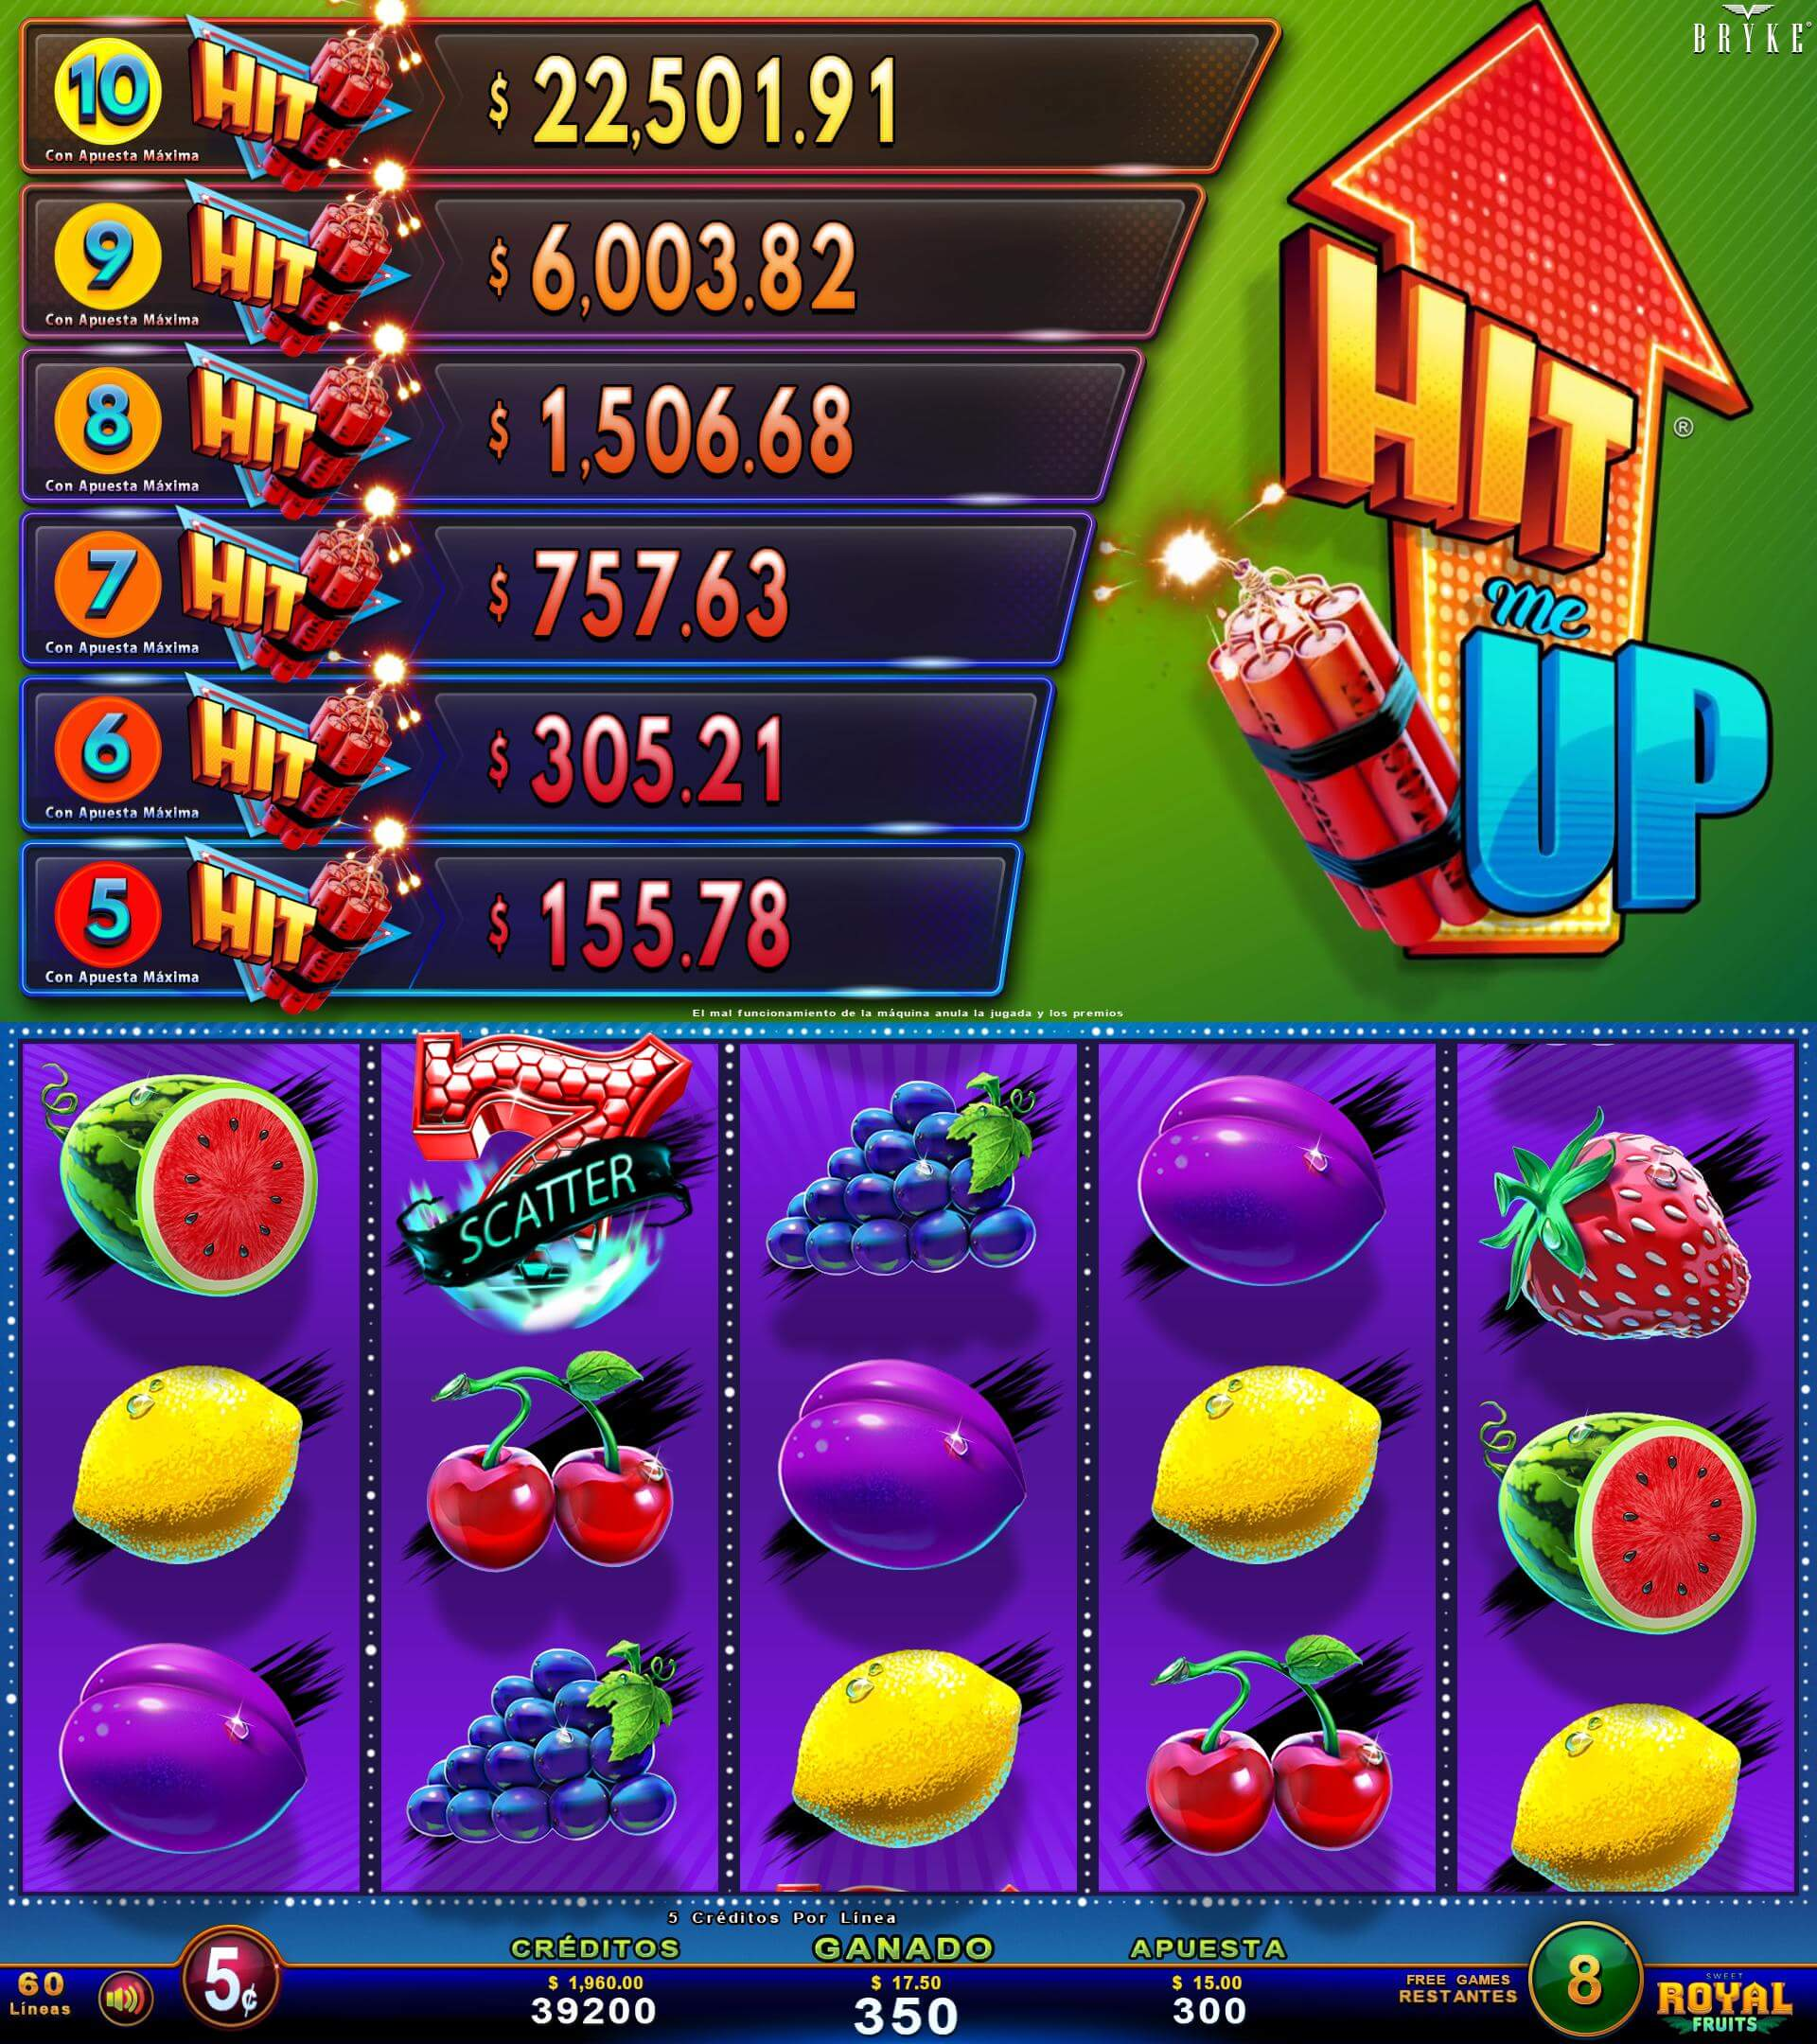 Royal Fruits - Hit Me Up -Multigame LAP